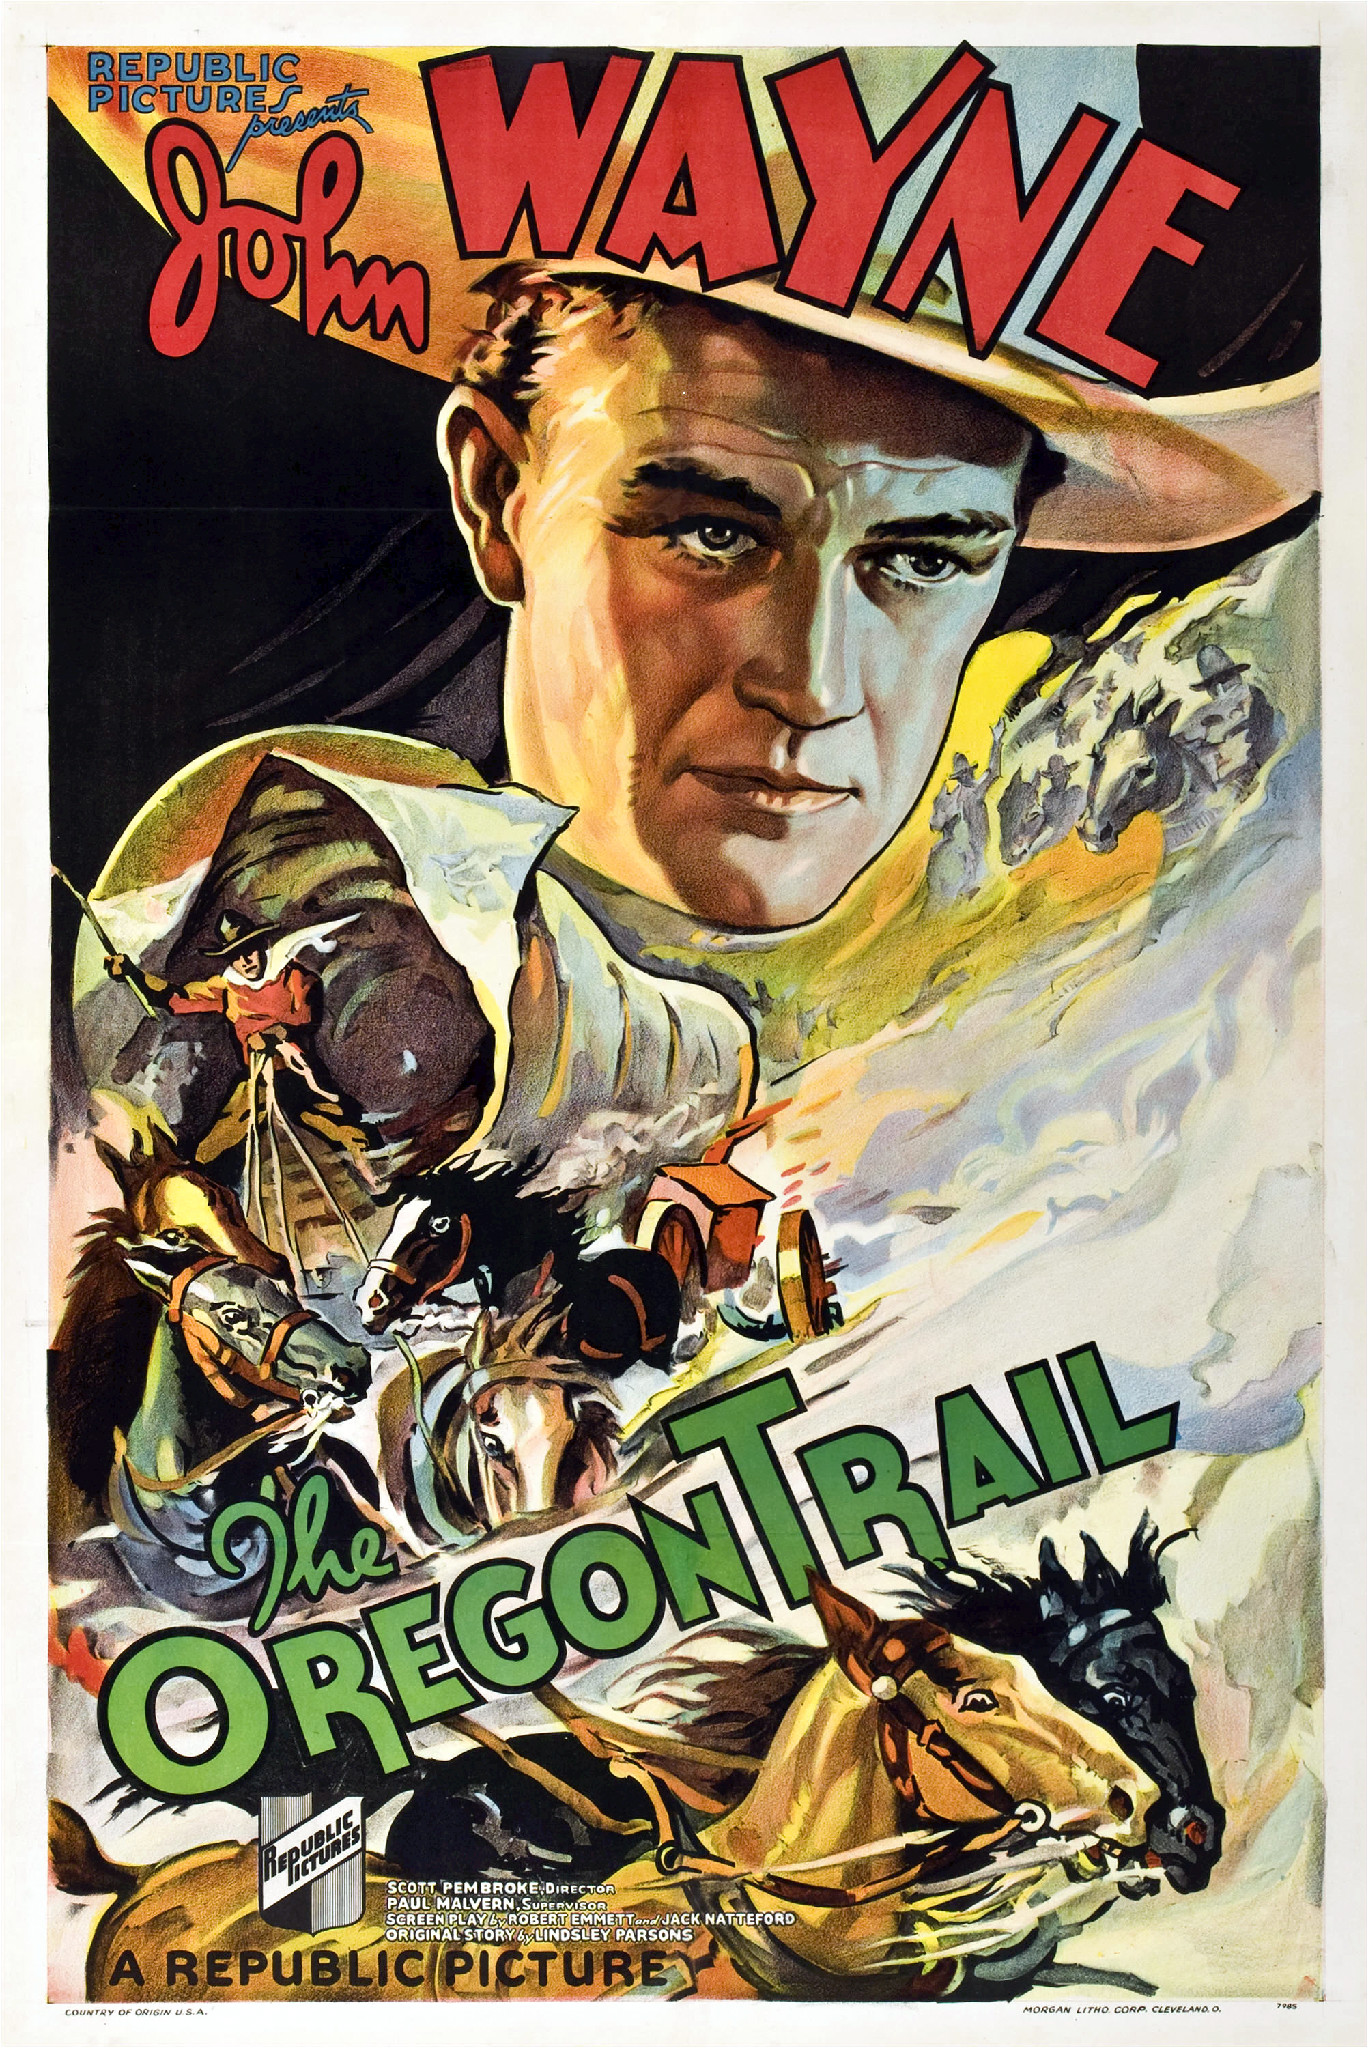 Oregon_trailposter.jpg